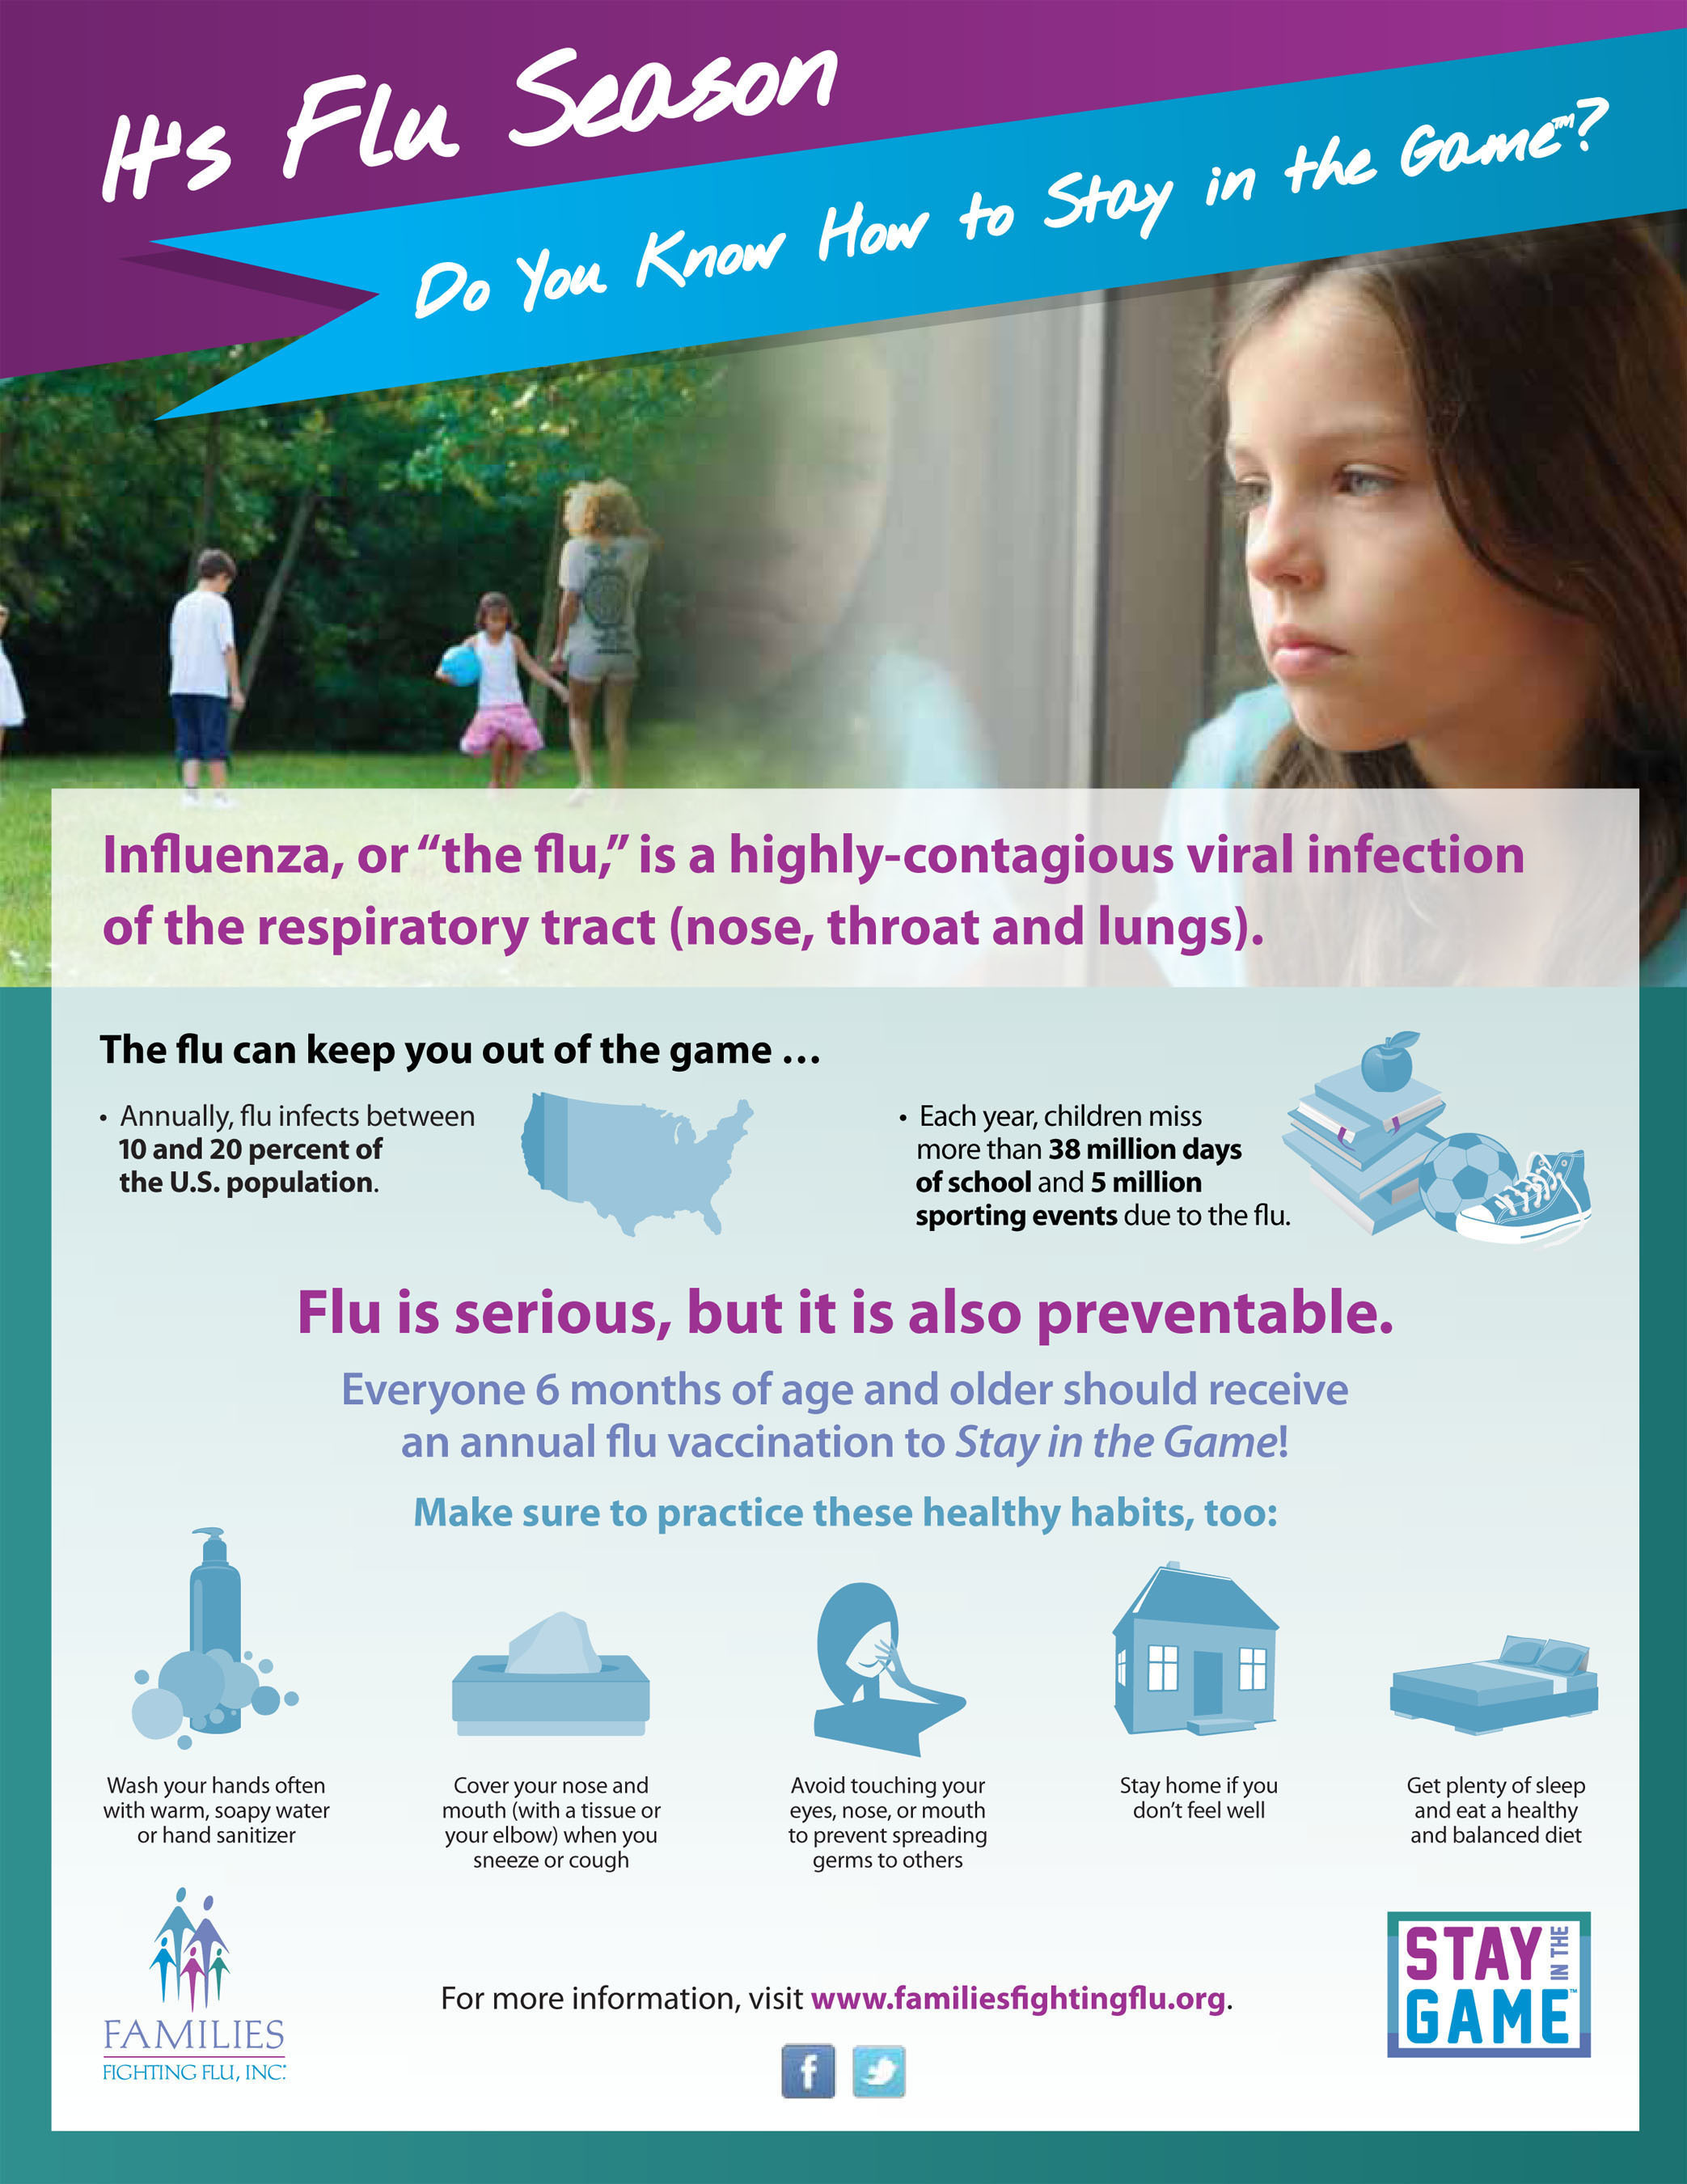 It's Flu Season - Do You Know How to Stay in the Game?  (PRNewsFoto/Families Fighting Flu)